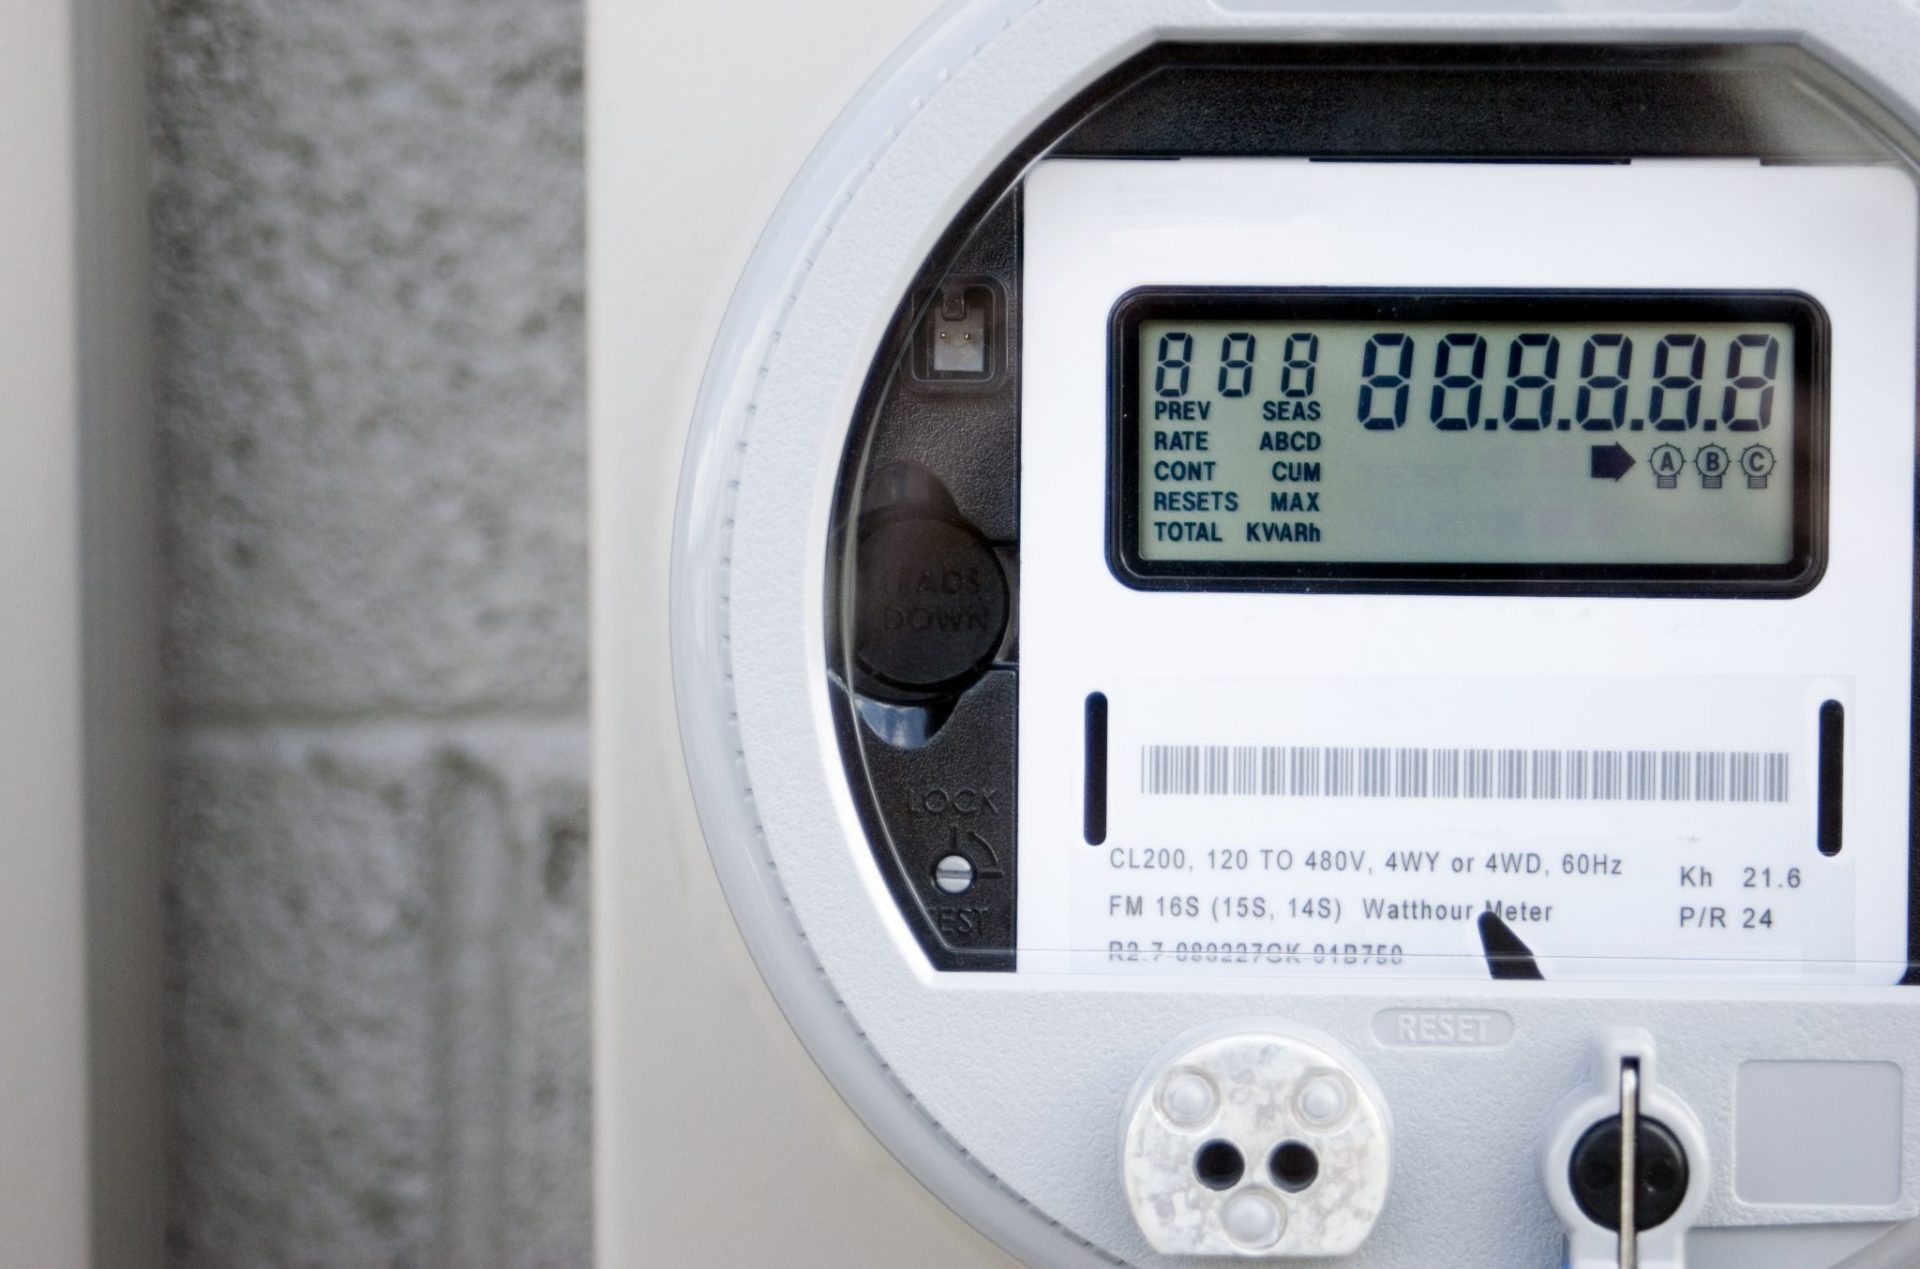 Digital Electric Meter : Gas and electric companies want to spy on every household